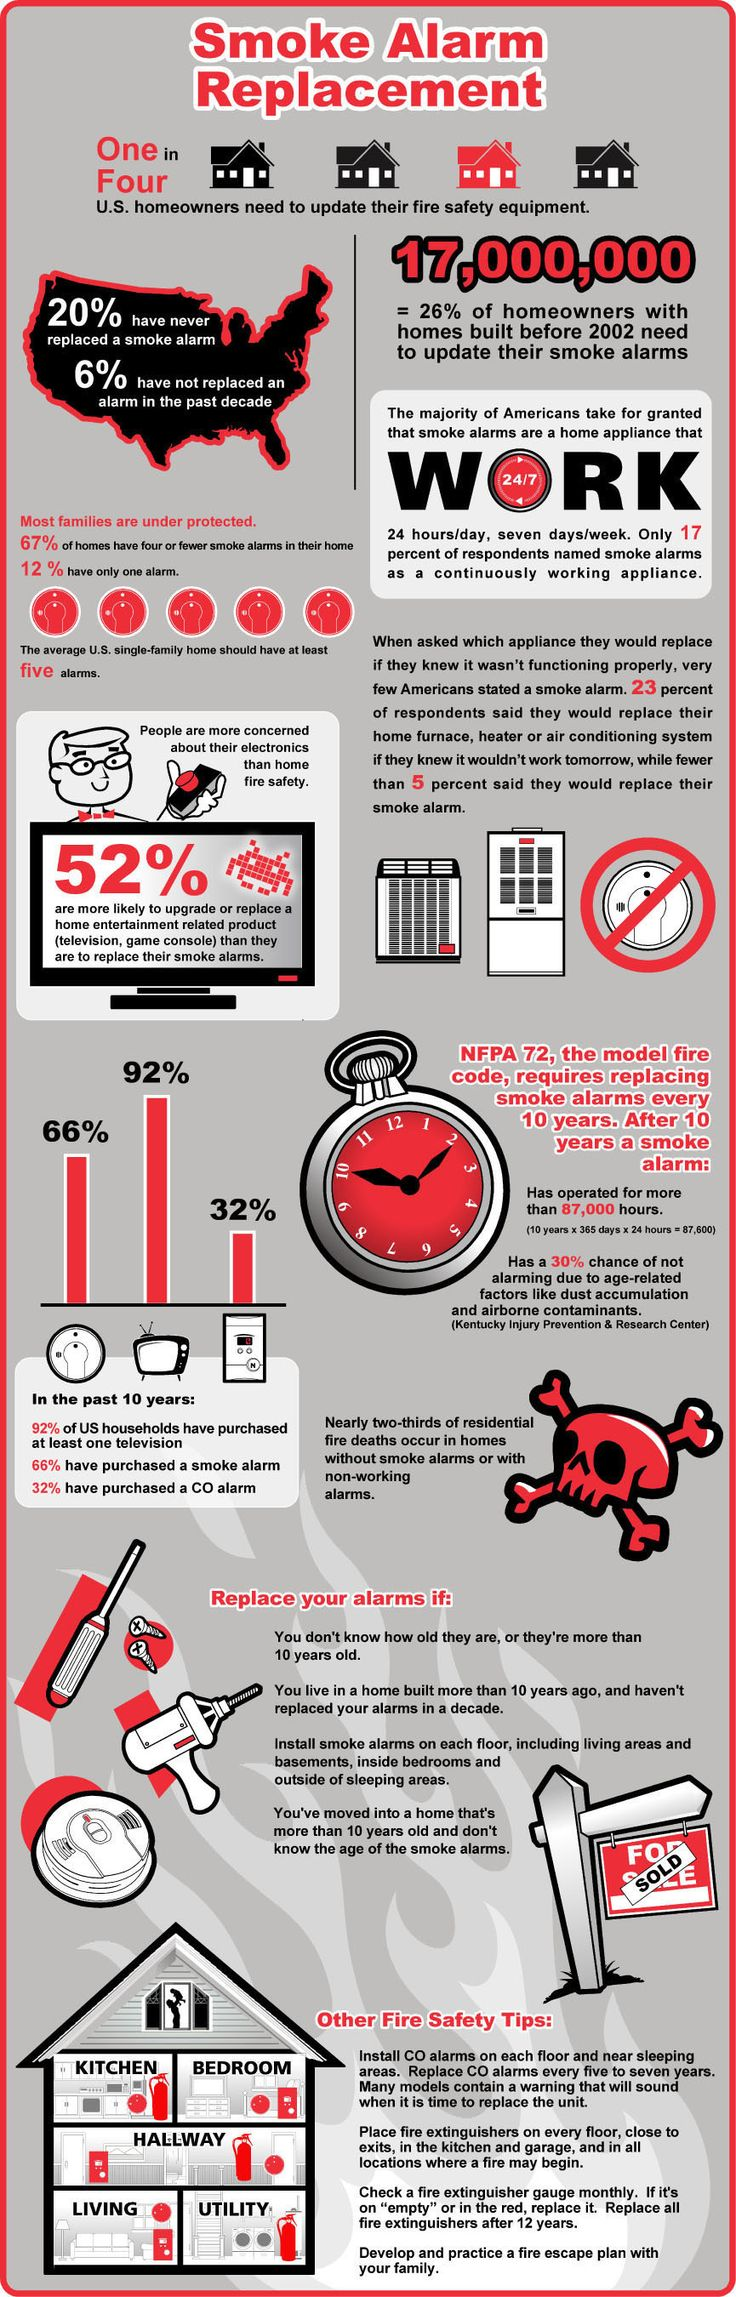 I want you all to be safe, Pinterest people! So use this as motivation to test/install equipment to keep you that way. June is Home Safety Month!